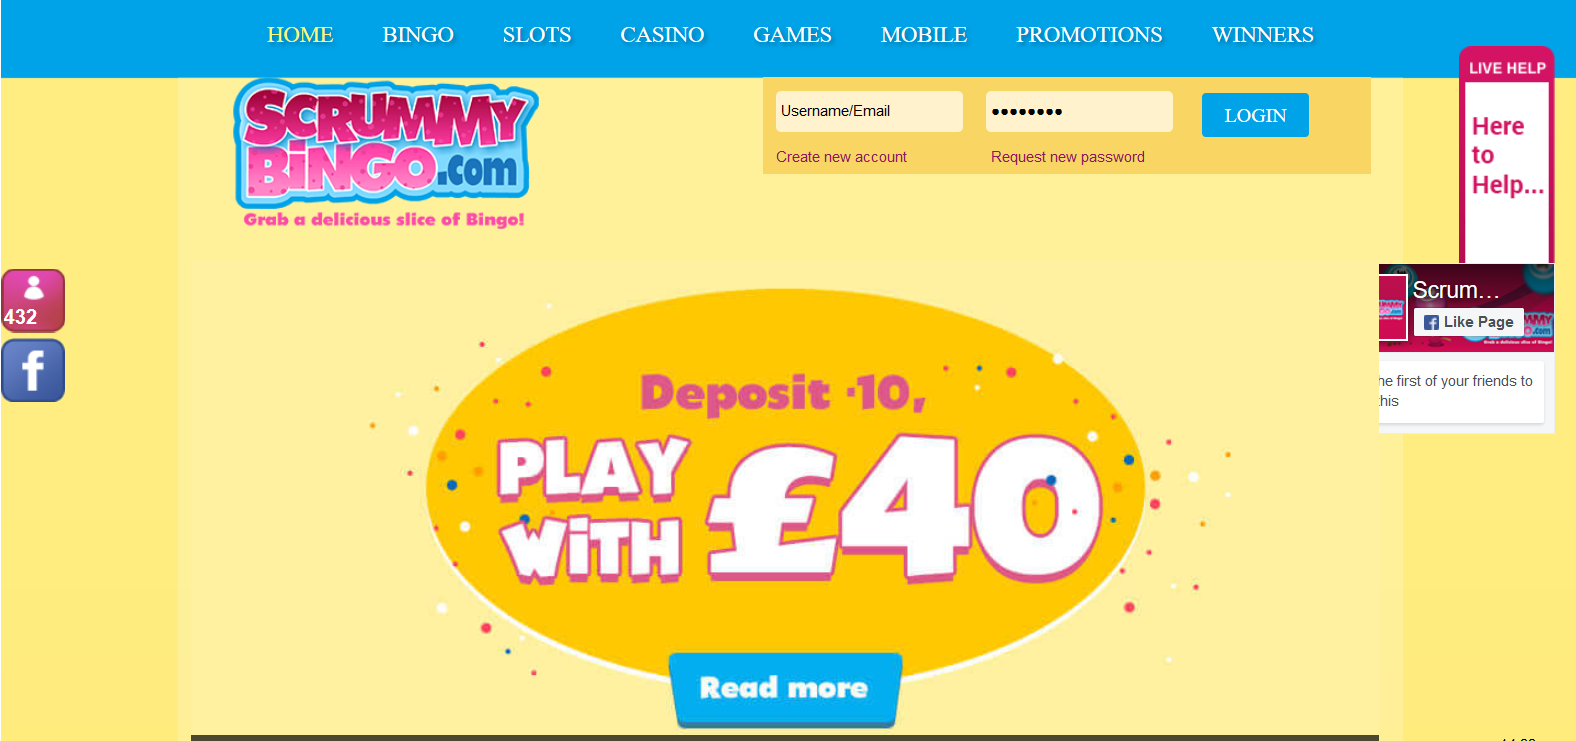 UK Bingo and Casino Games - Scrummy Bingo